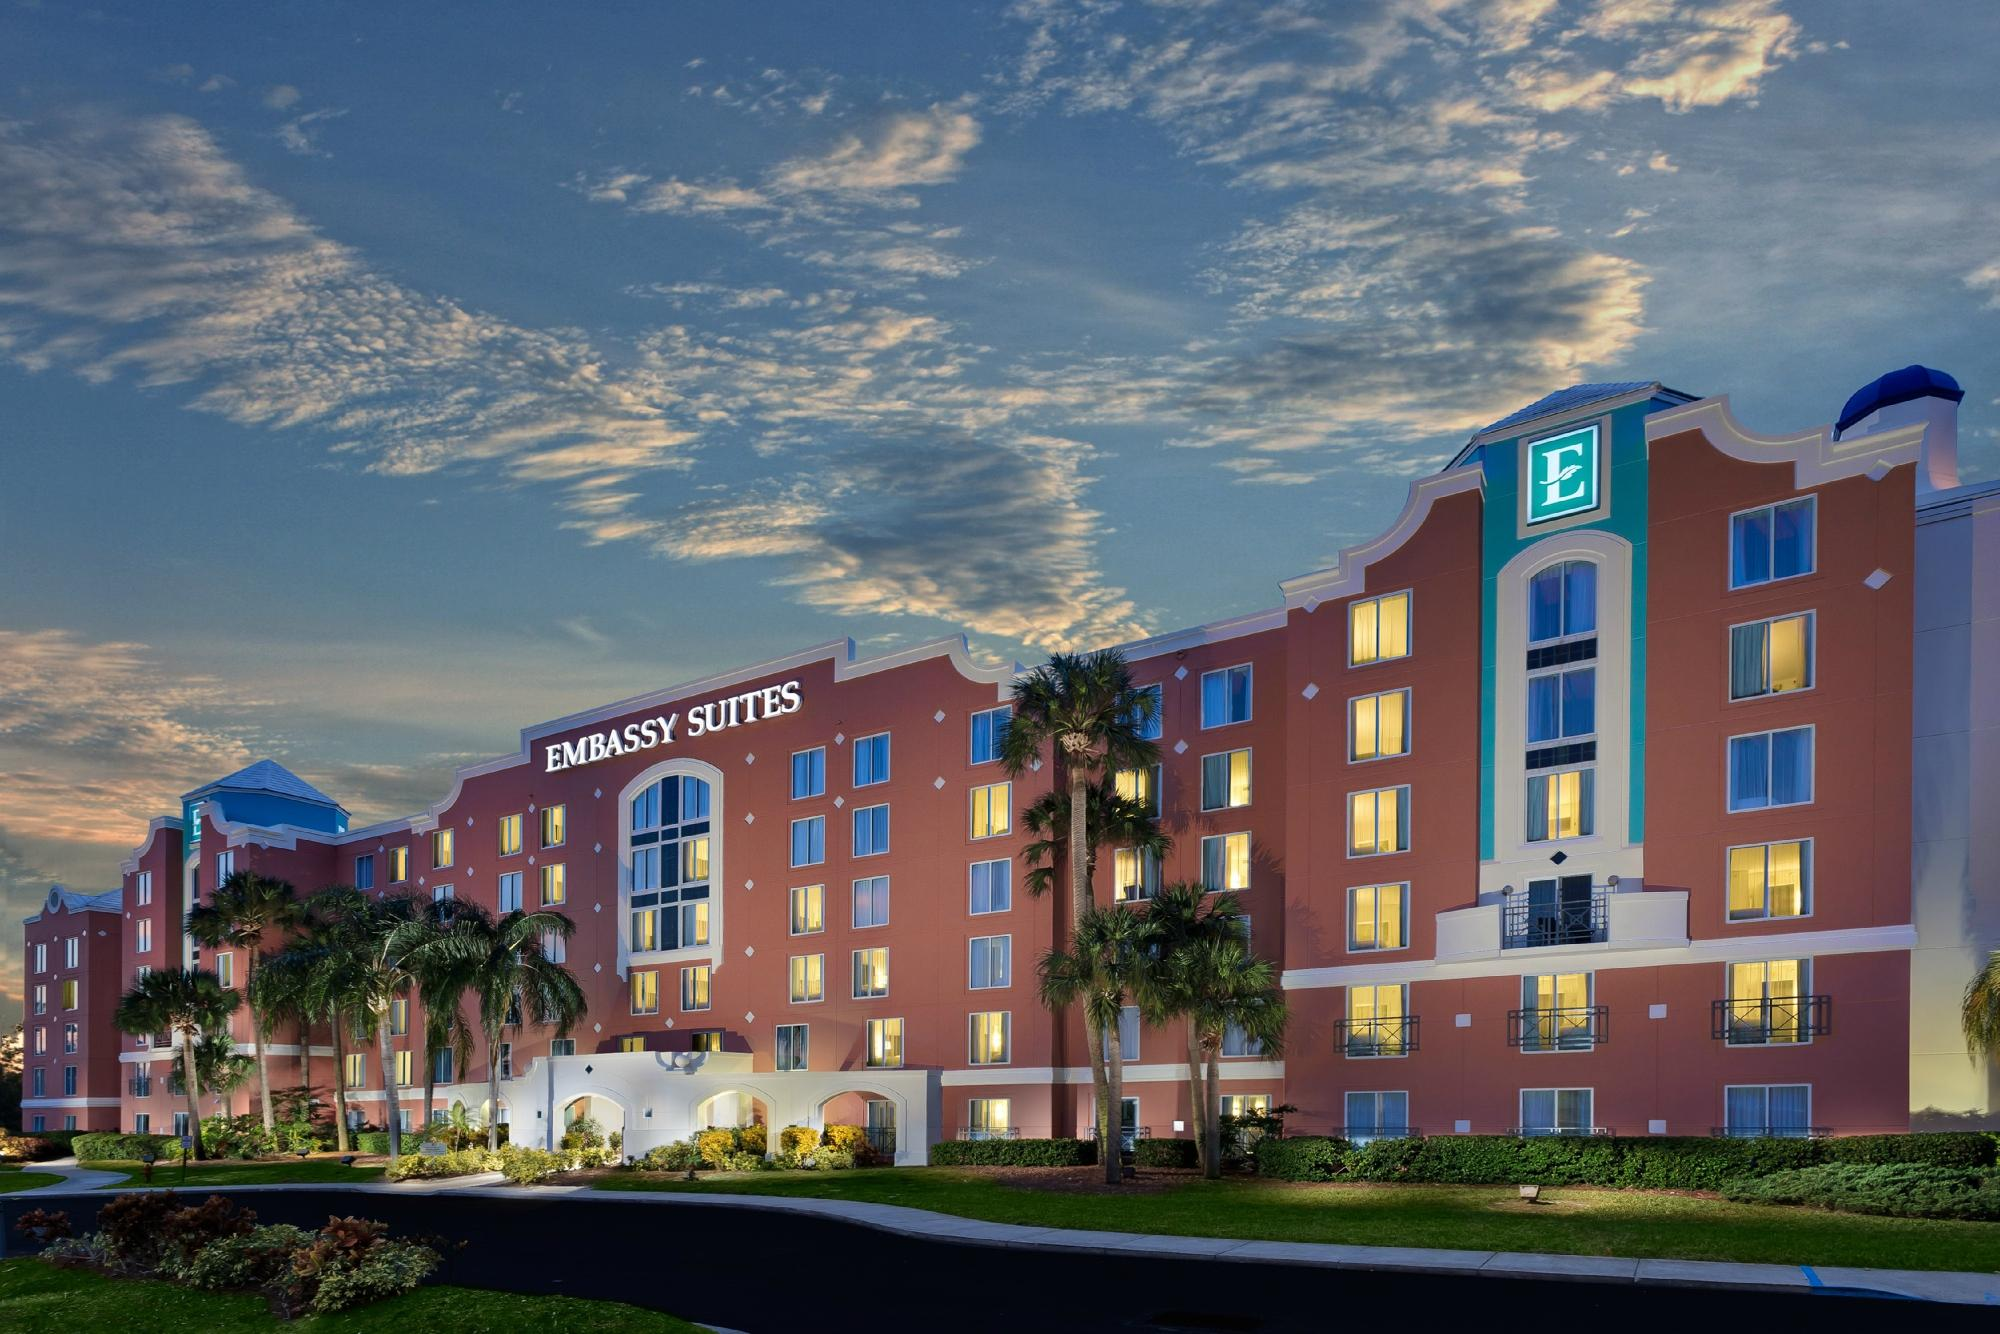 Embassy Suites by Hilton Orlando/Lake Buena Vista Resort